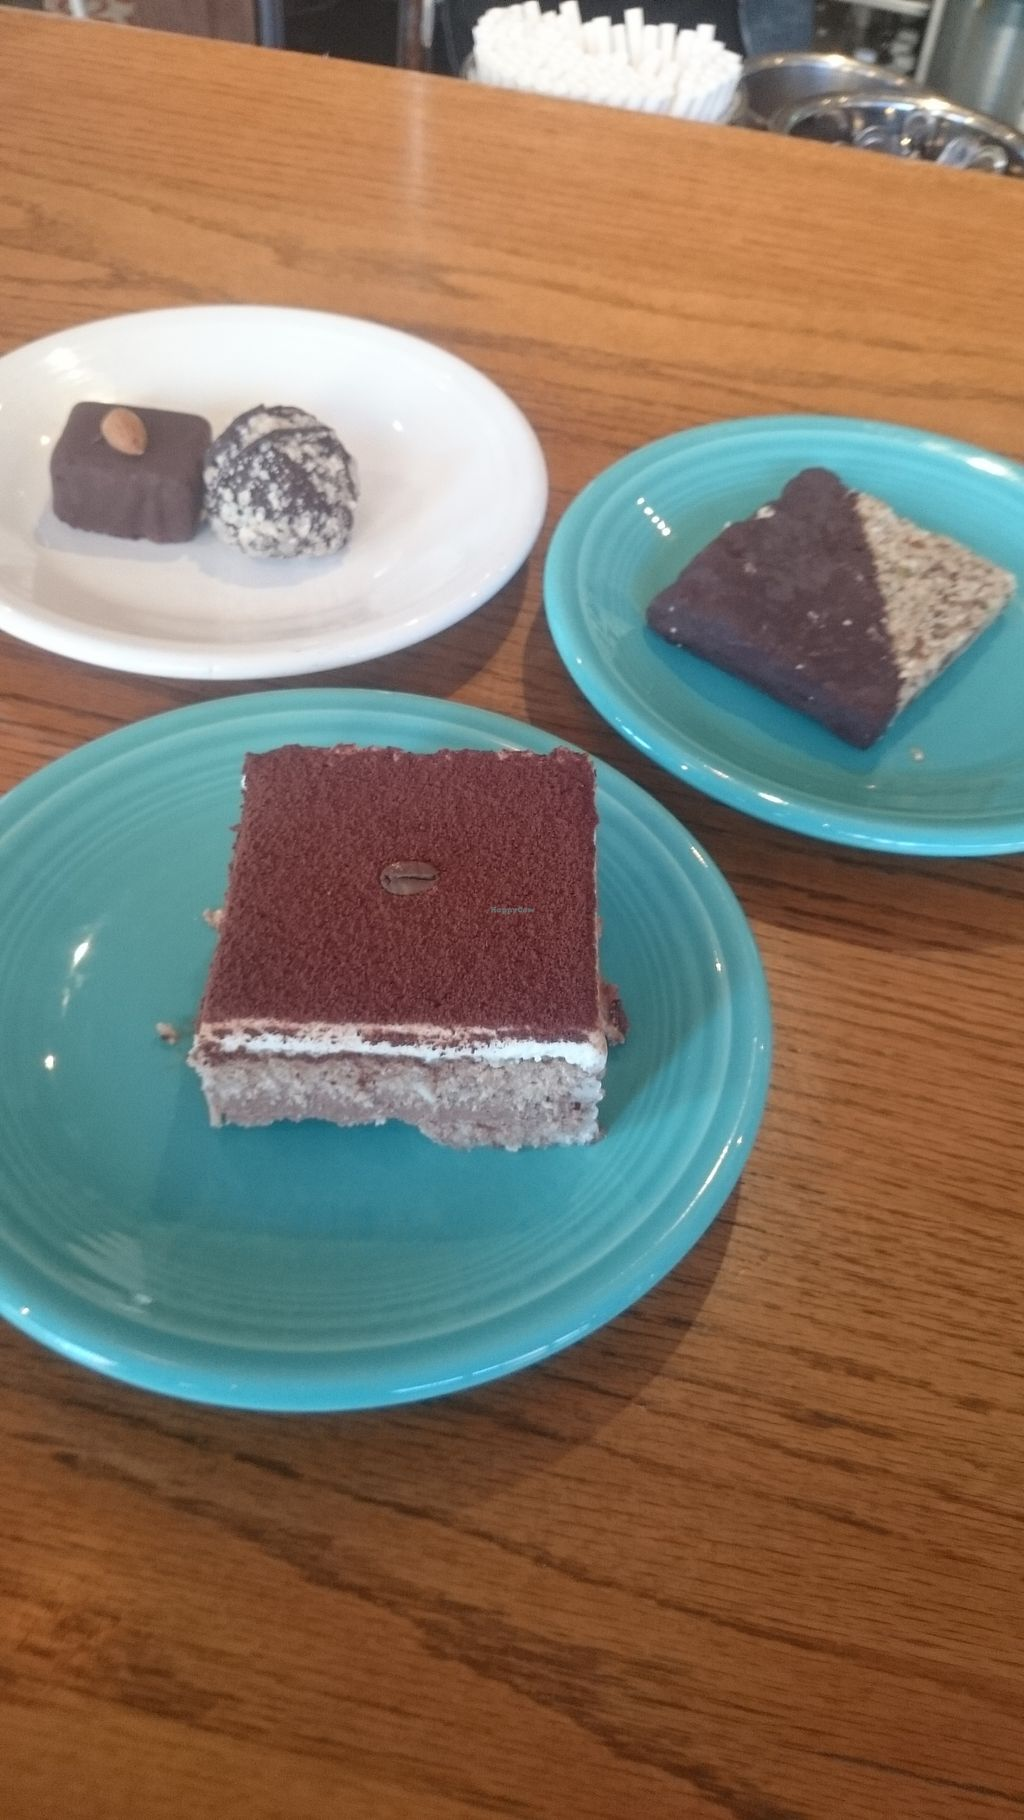 """Photo of Cafe Gratitude - Hollywood  by <a href=""""/members/profile/chb-pbfp"""">chb-pbfp</a> <br/>Desserts <br/> October 30, 2017  - <a href='/contact/abuse/image/25808/320131'>Report</a>"""